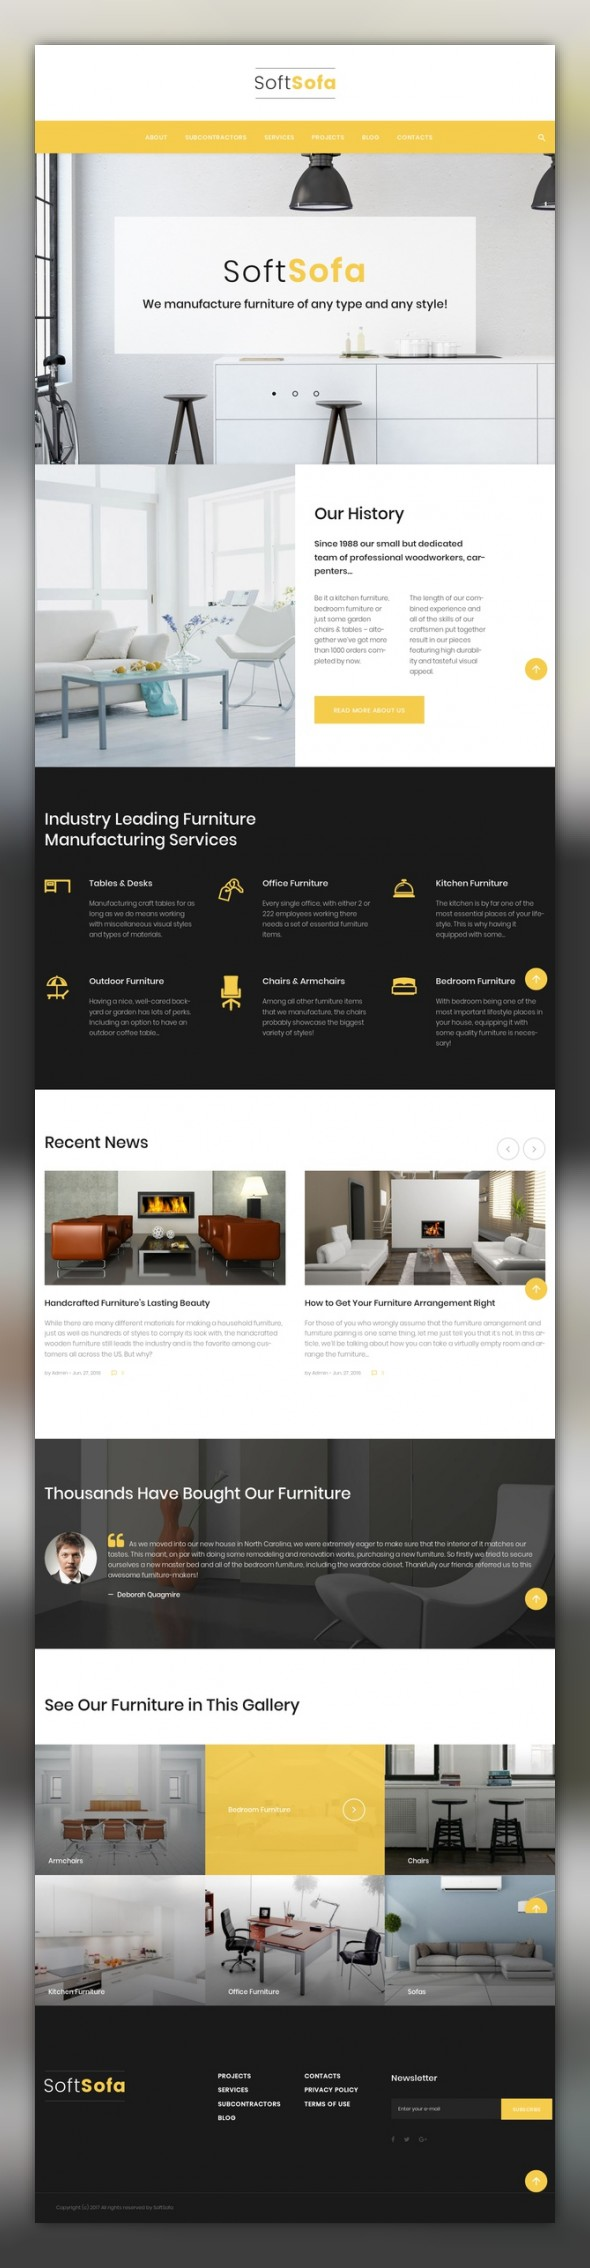 Soft Sofa - Furniture & Manufacturing Company WordPress Theme CMS ...